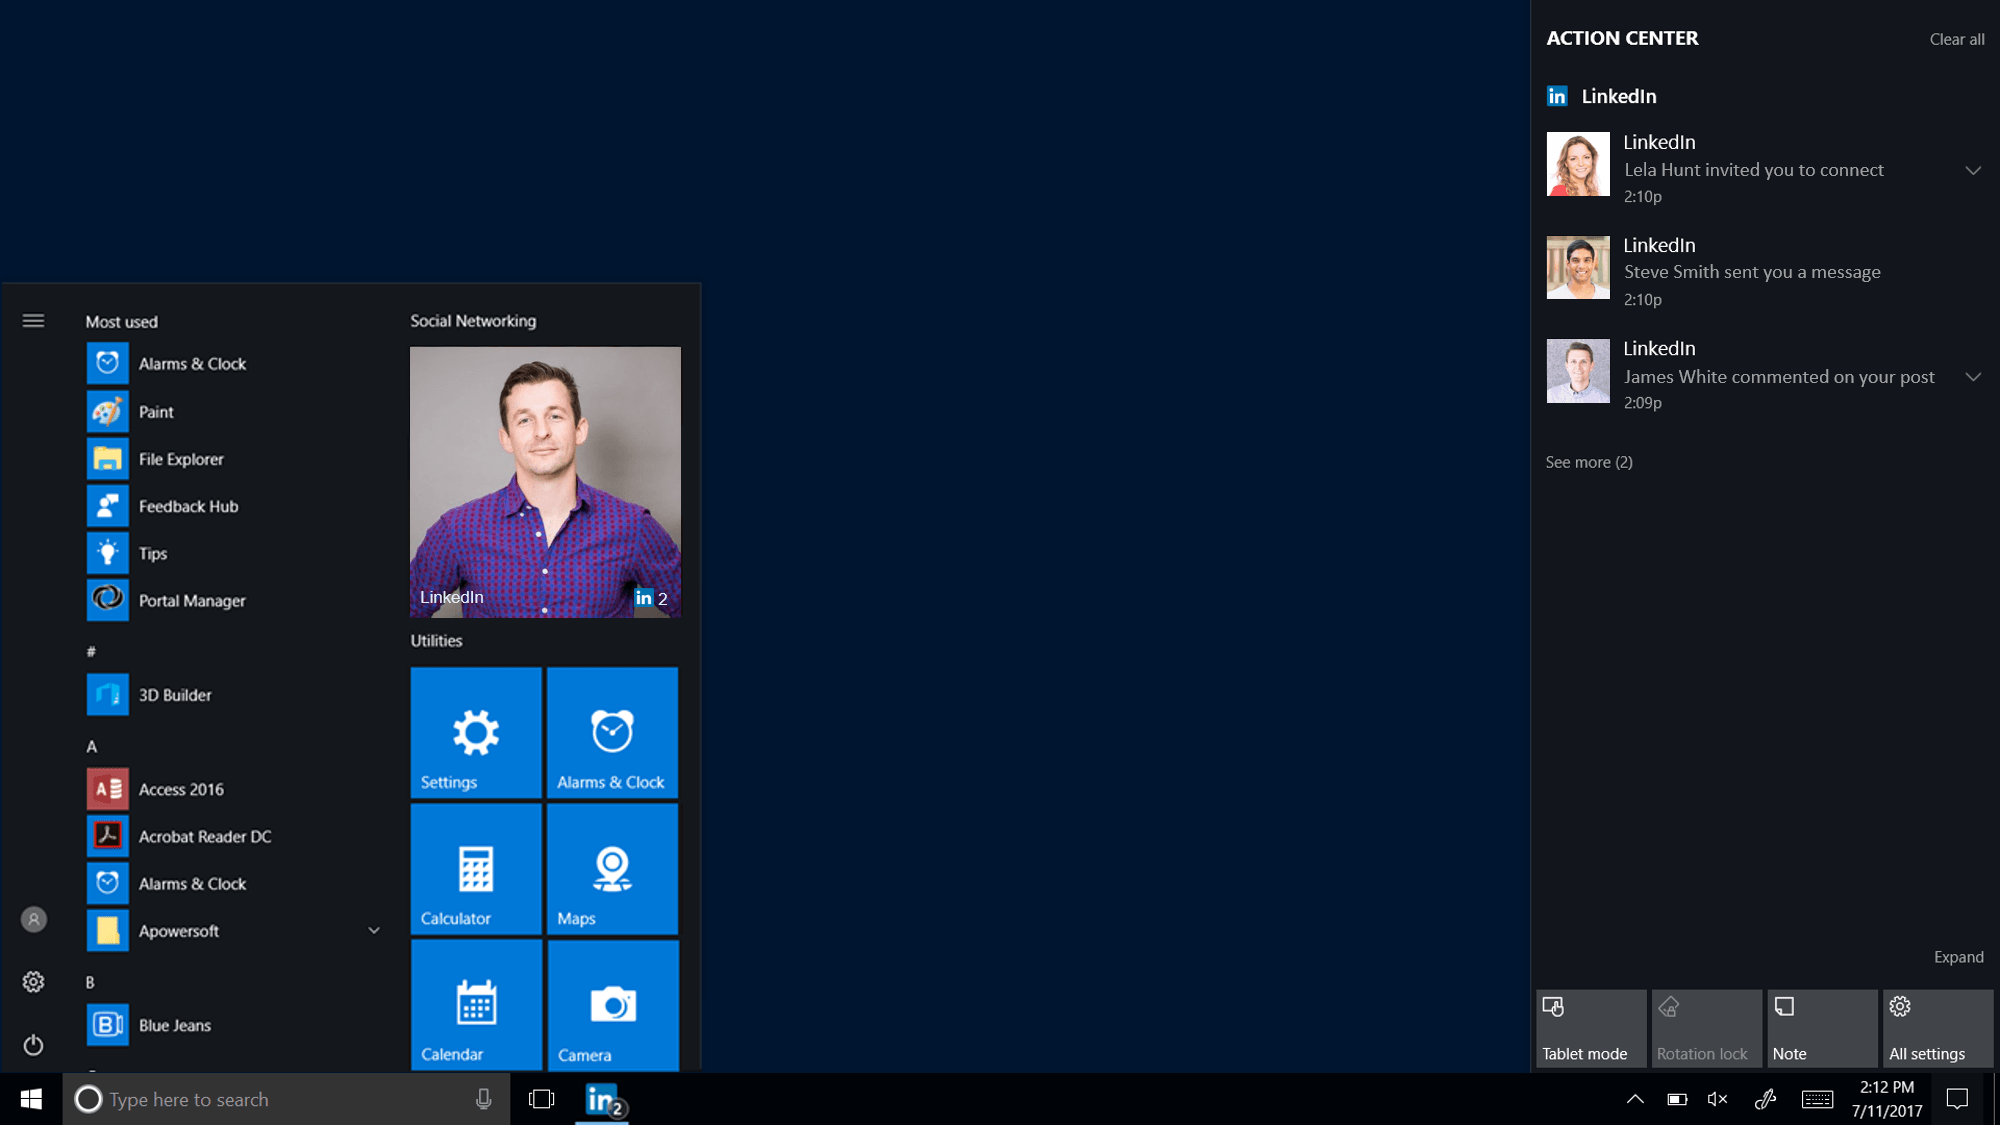 Dedicated Linkedin app is coming to Windows 10